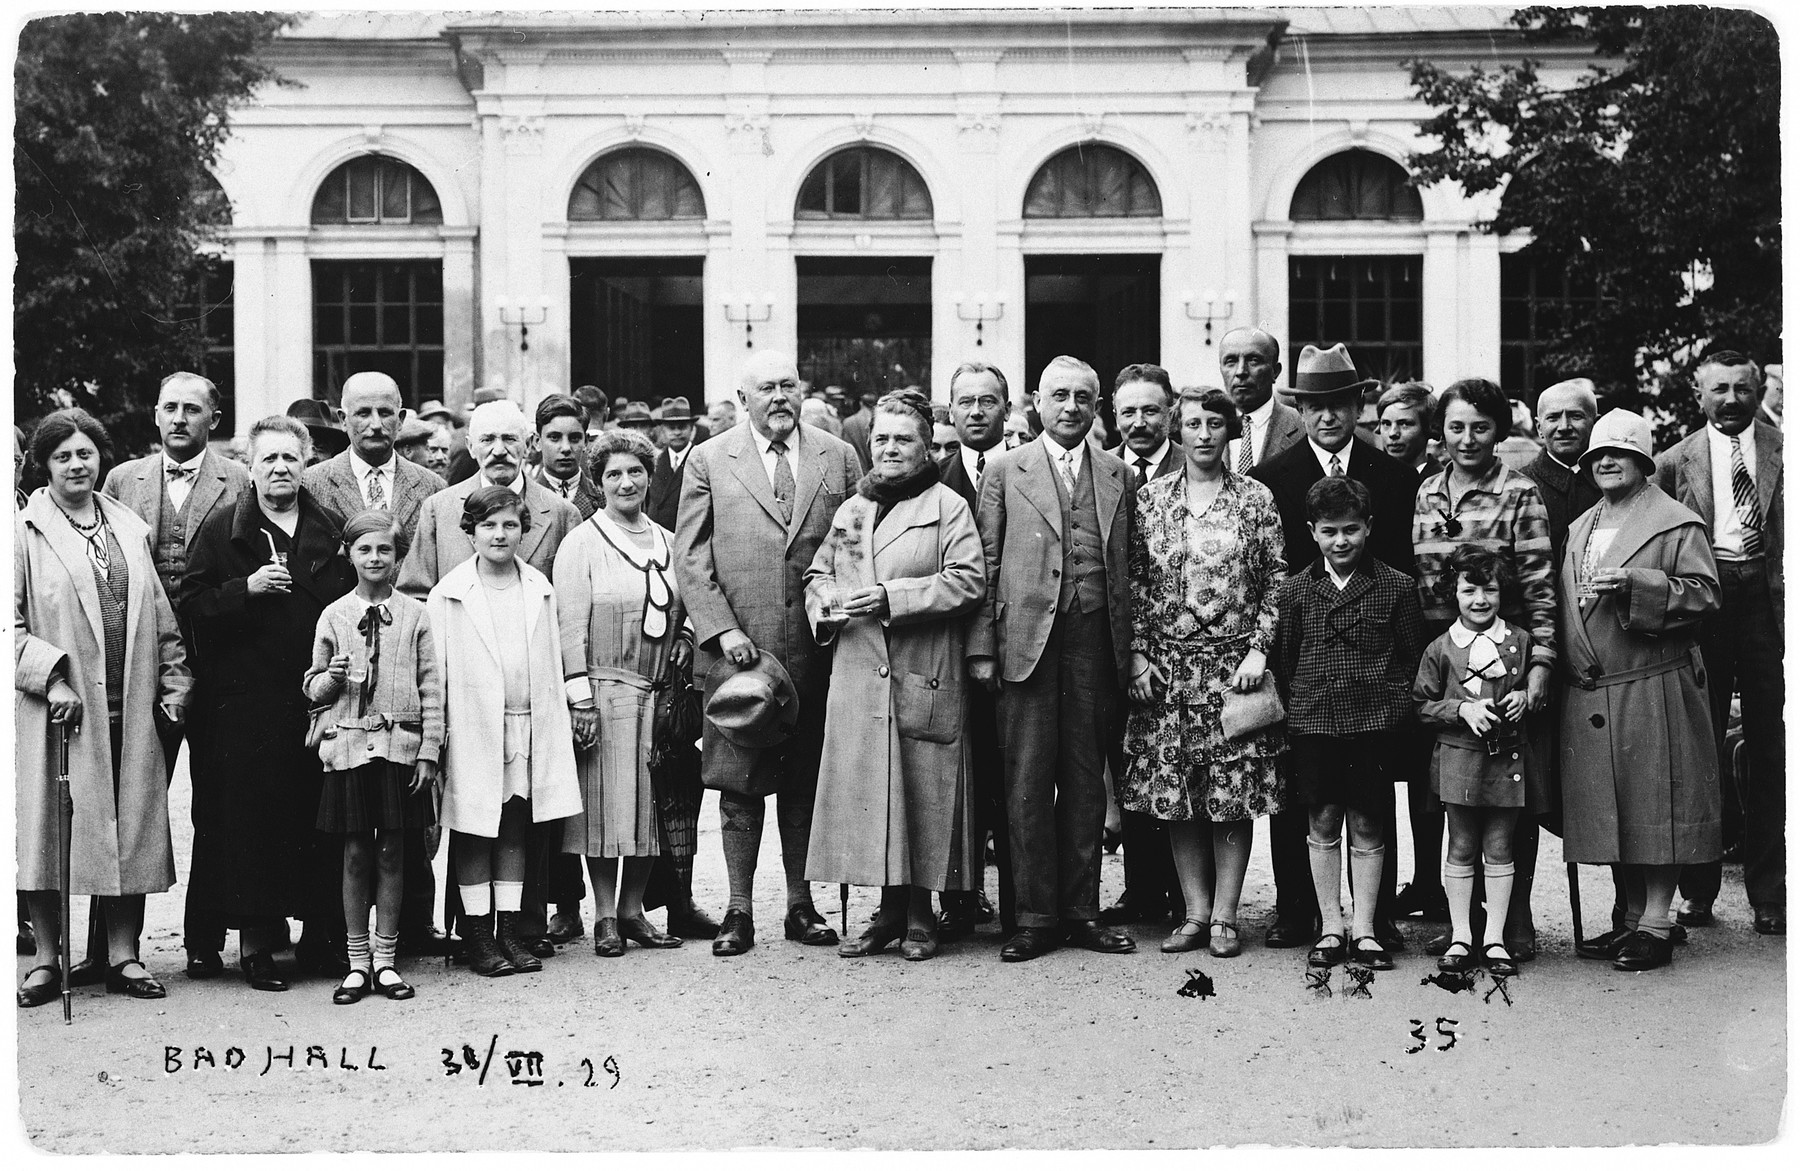 Visitors pose with glasses of mineral water in front of a hotel at the Bad Hall resort.  Among those pictured are the Fuchs family.